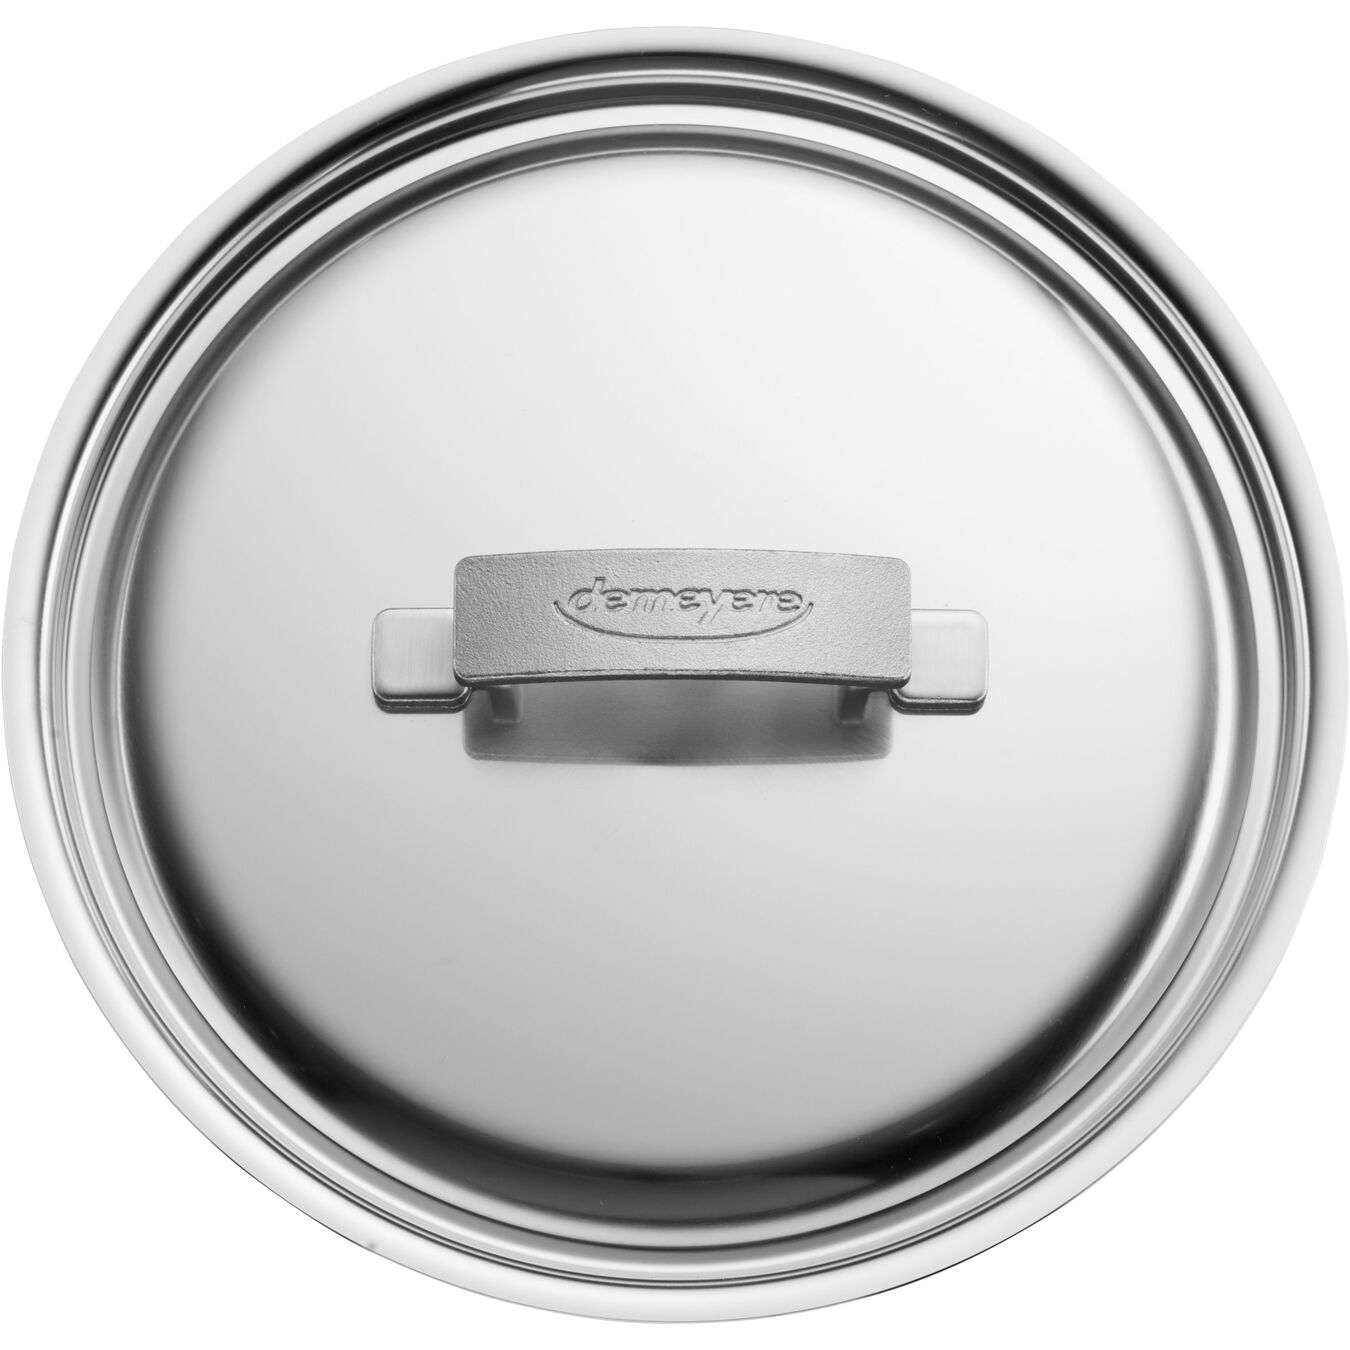 270.5-oz Stock pot with lid, 18/10 Stainless Steel ,,large 7